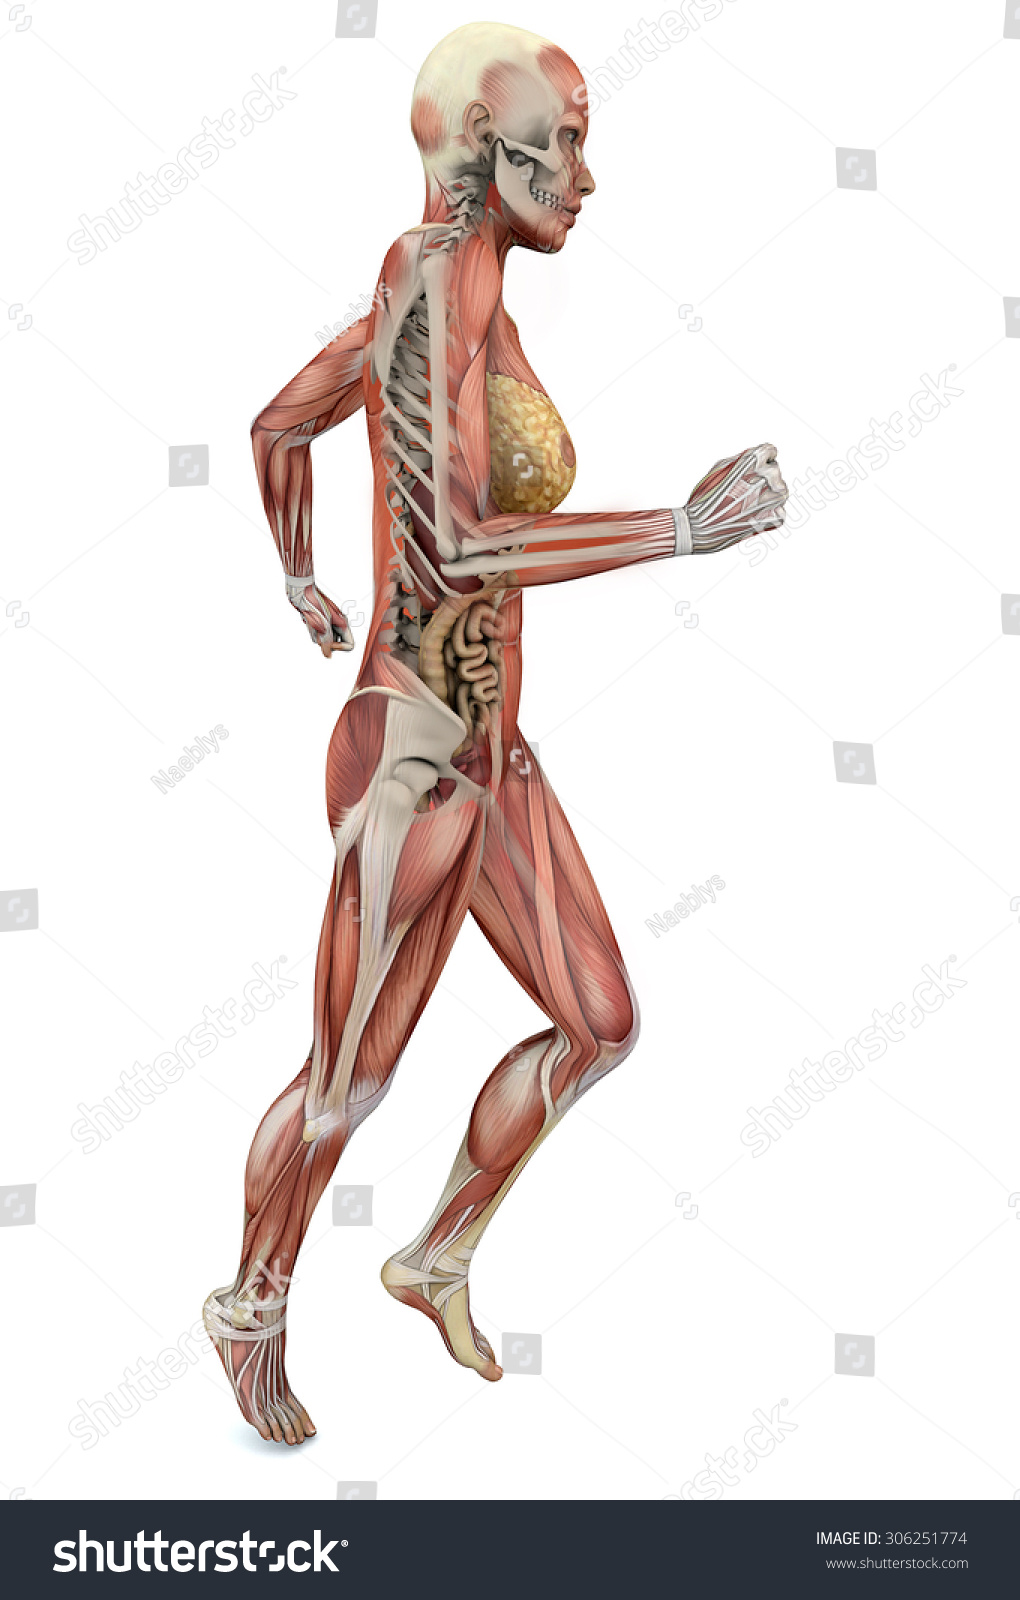 Woman Running Anatomy Body Muscles Skeleton Stock Illustration